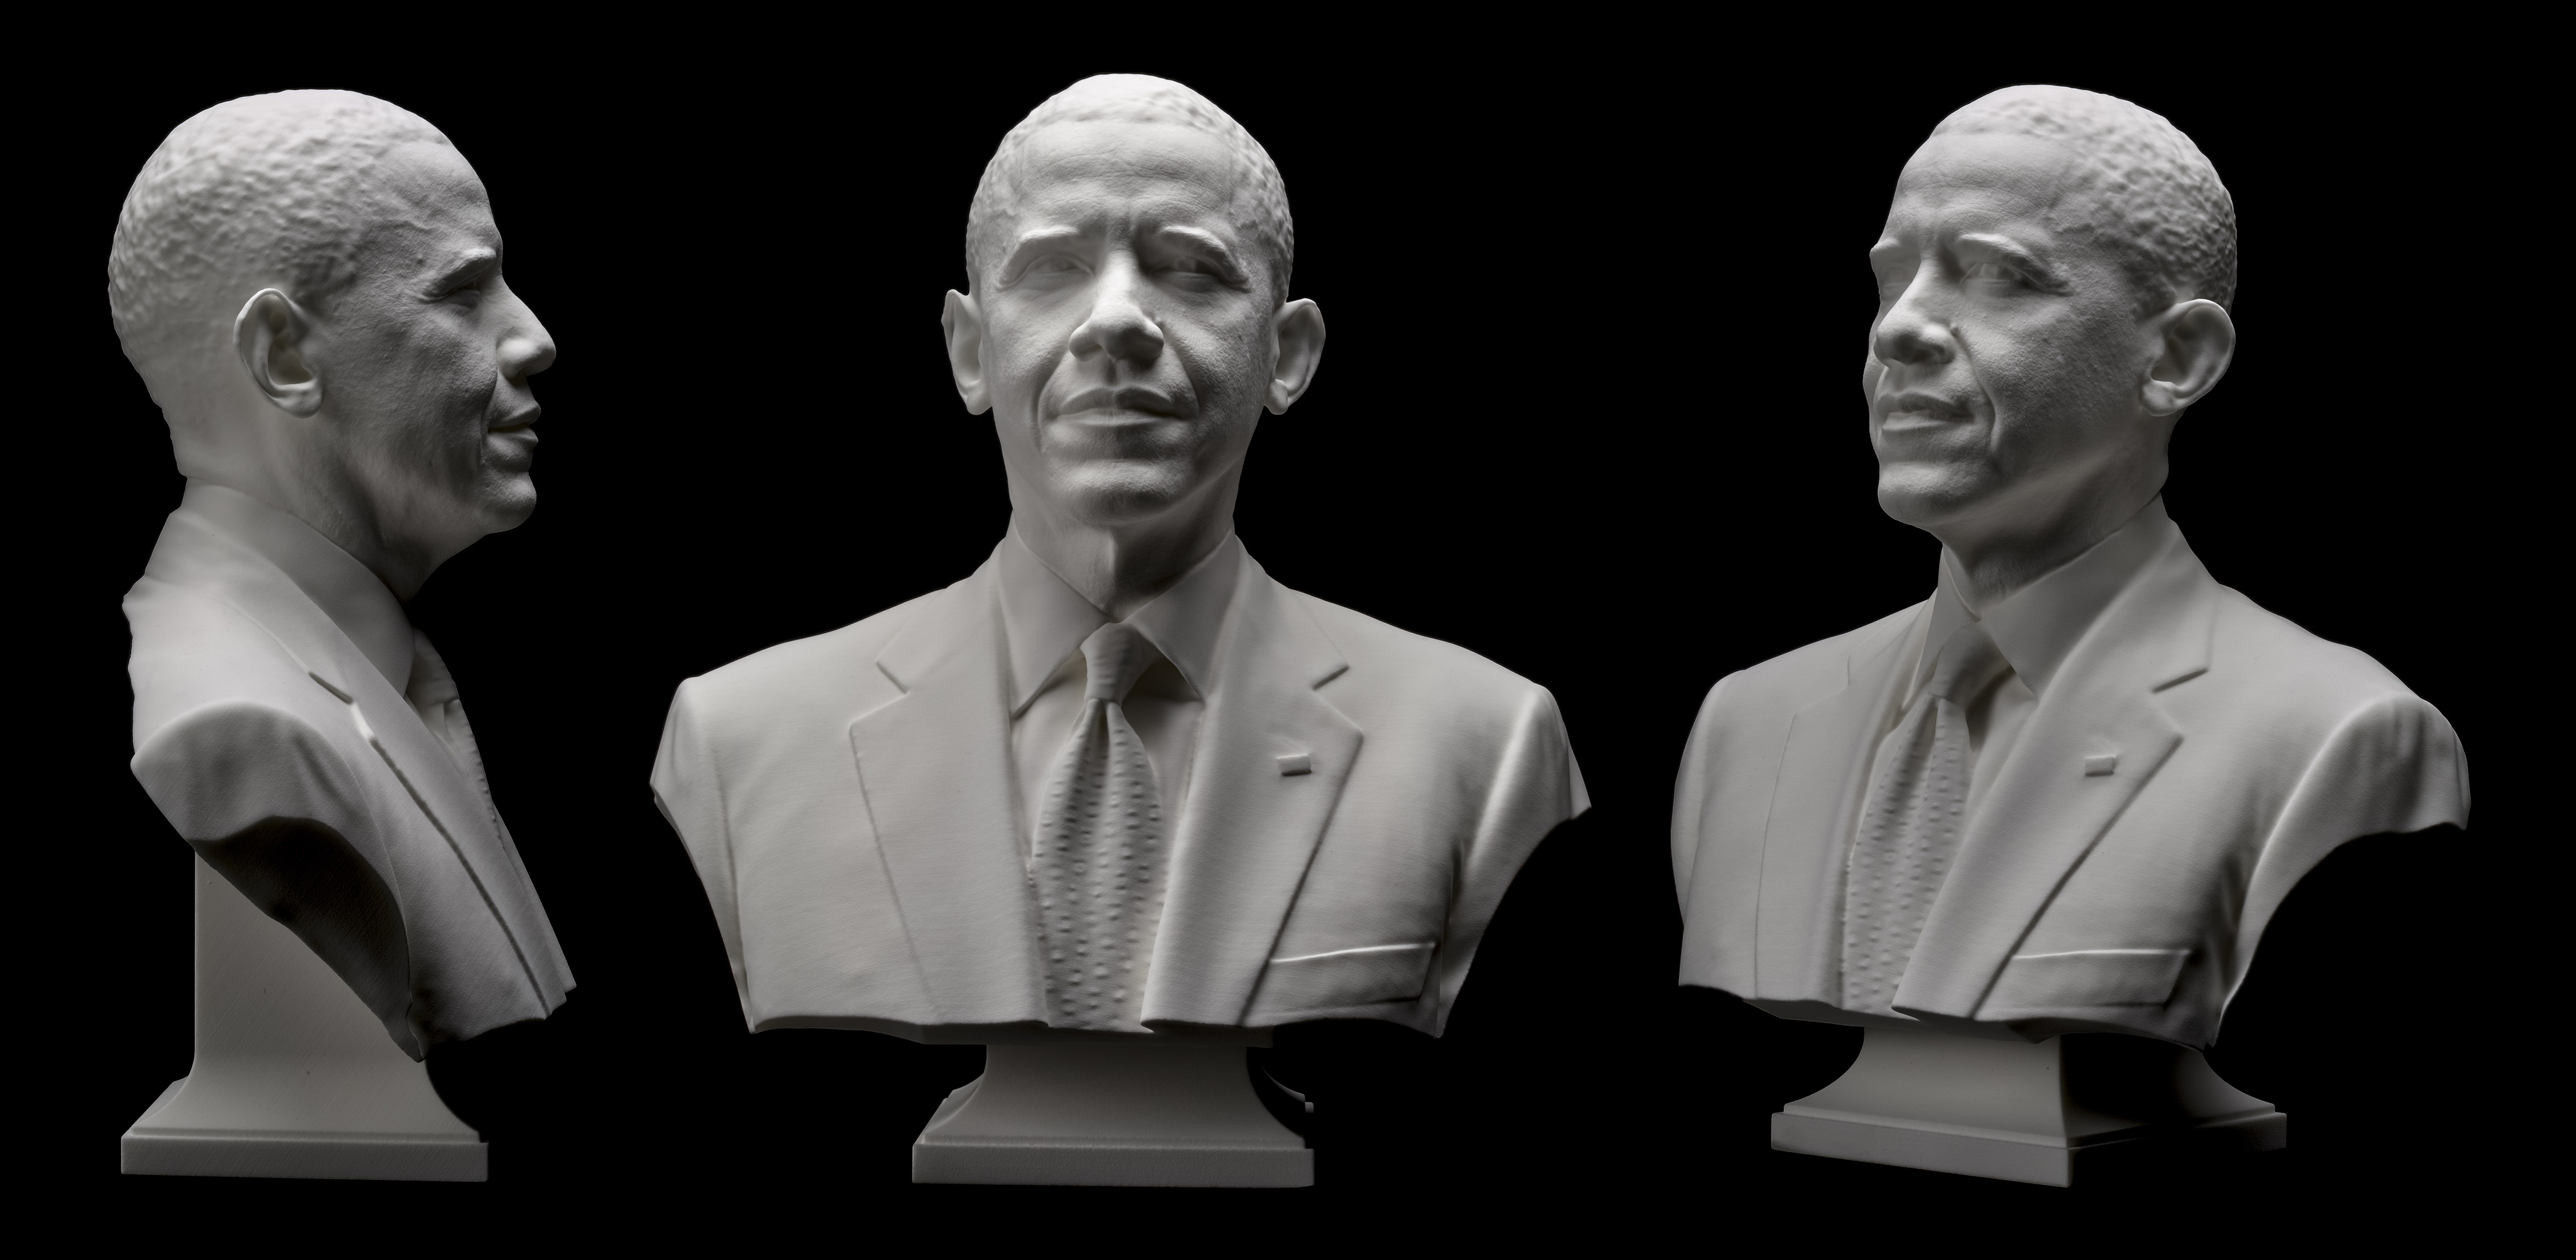 3D portrait of President Barack Obama